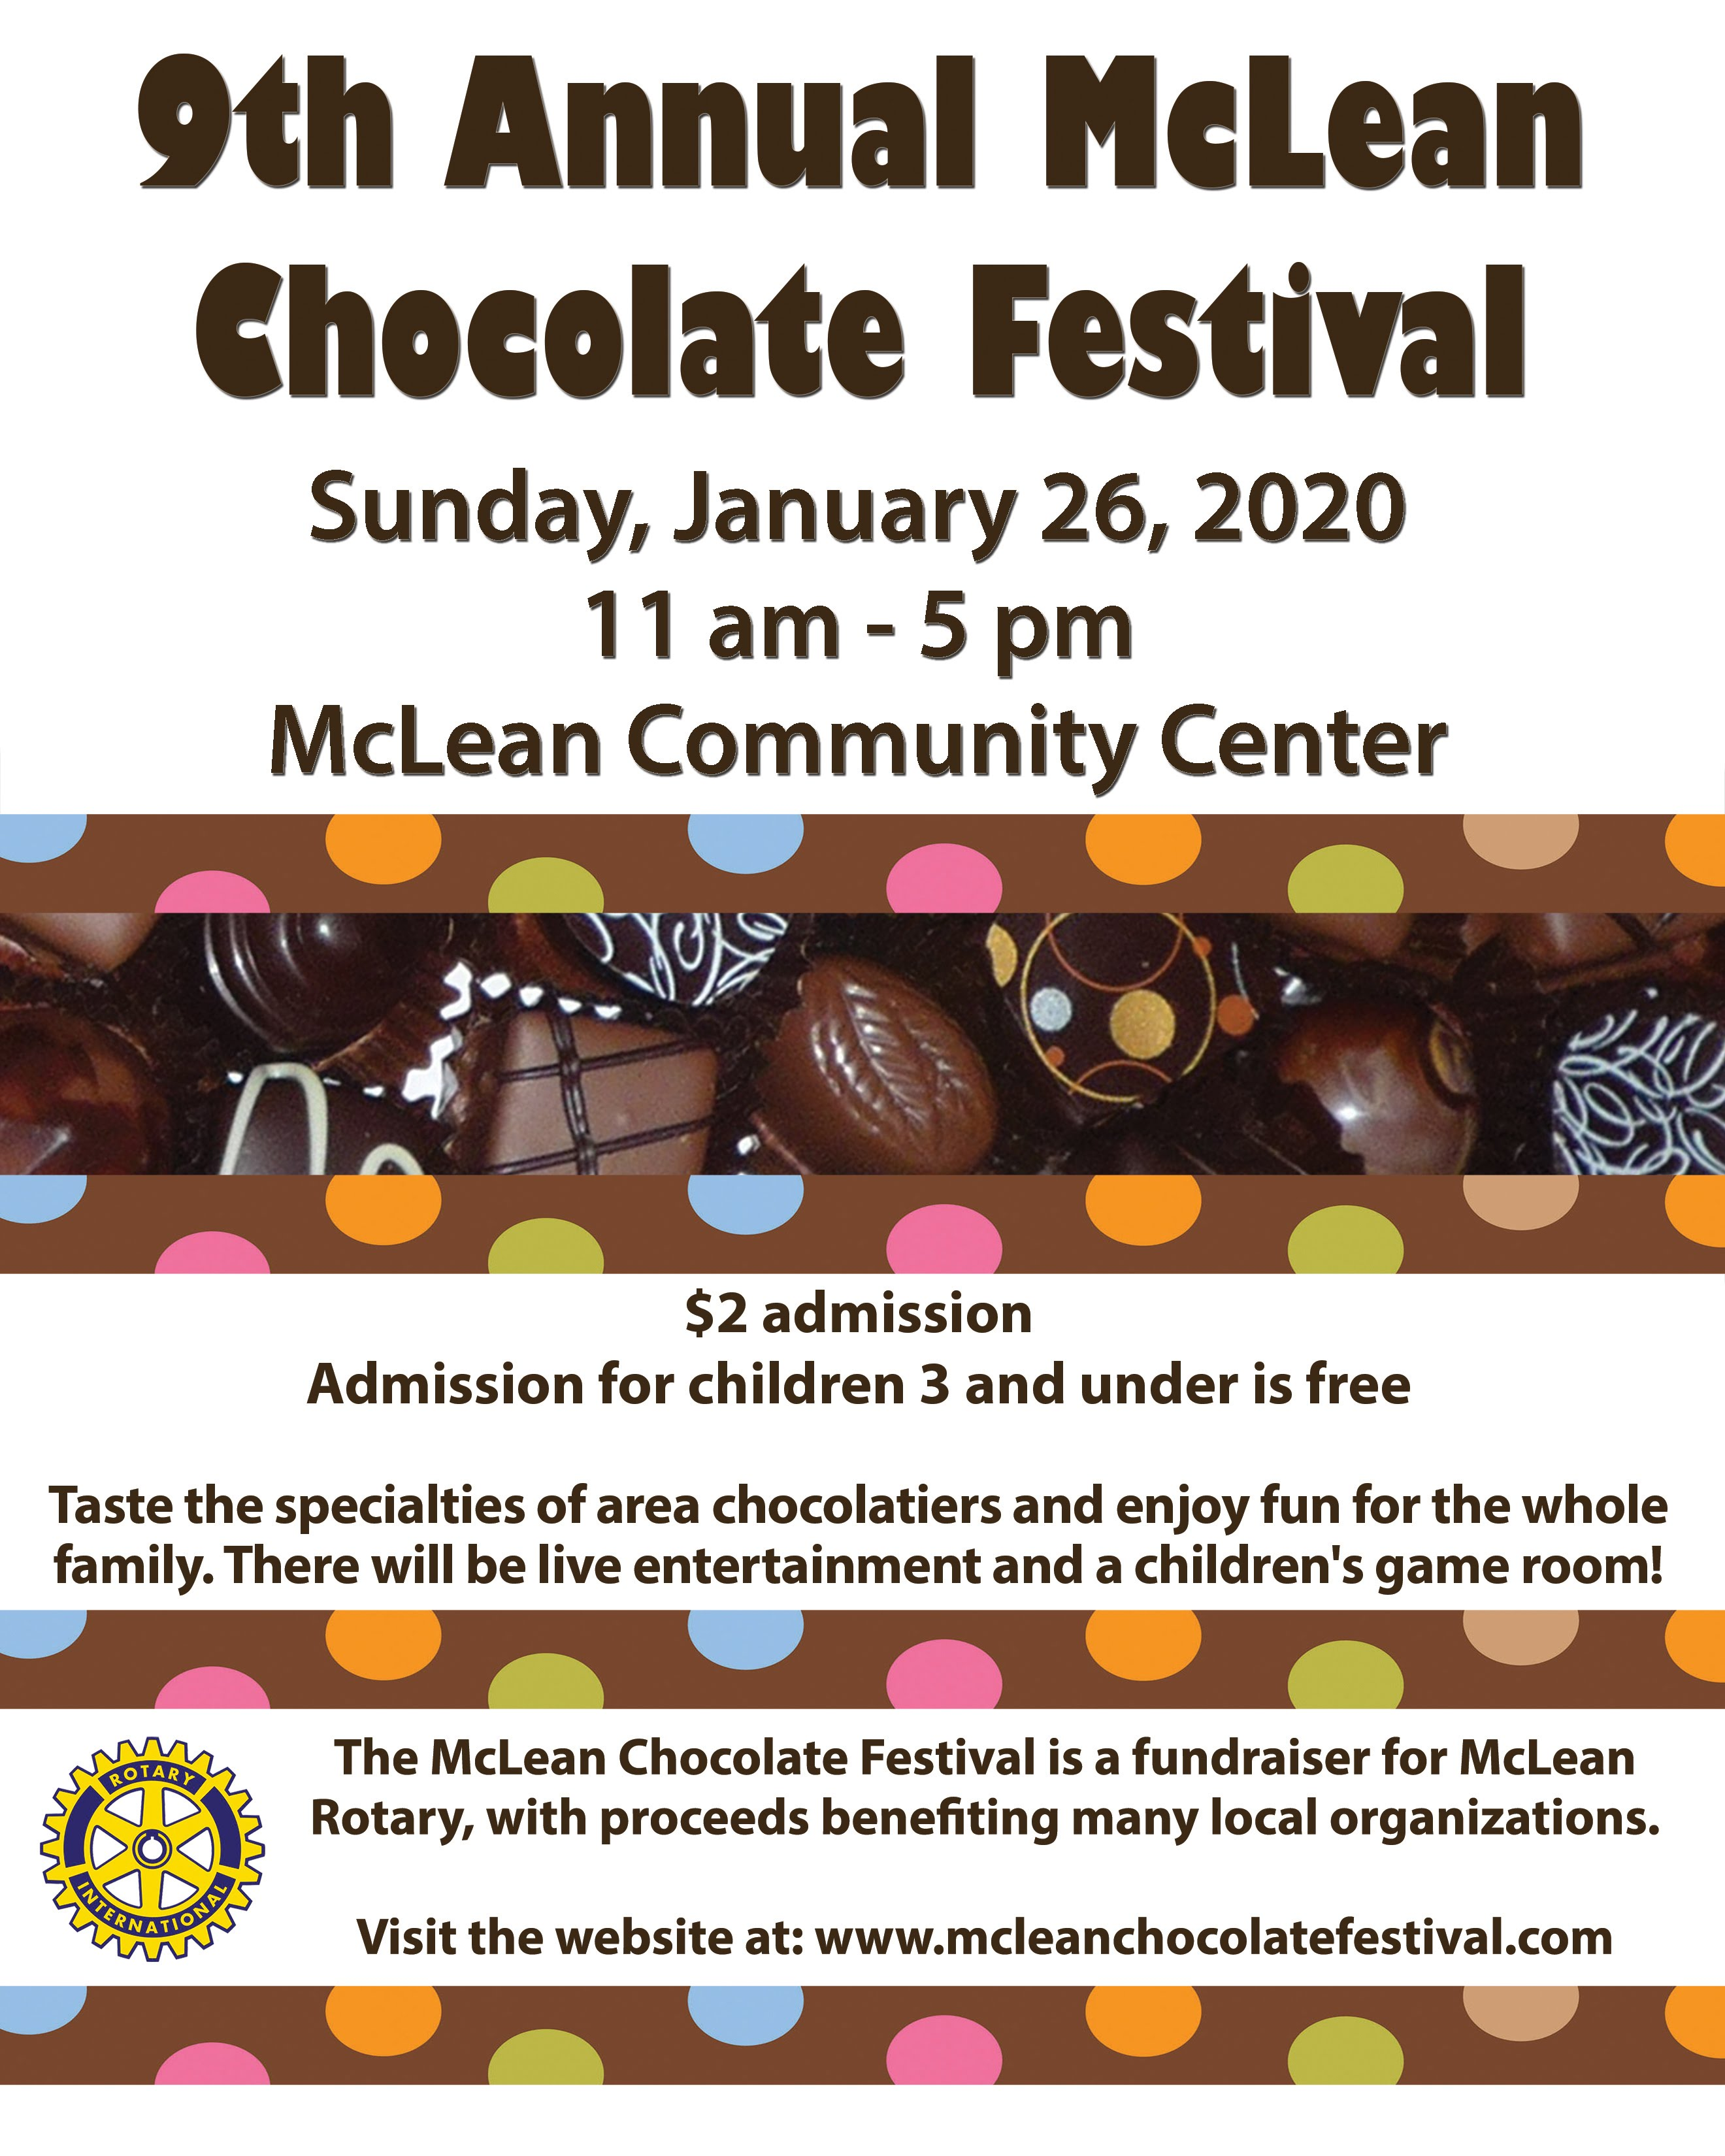 Home Free Tour Schedule 2020 mcleanchocolatefestival